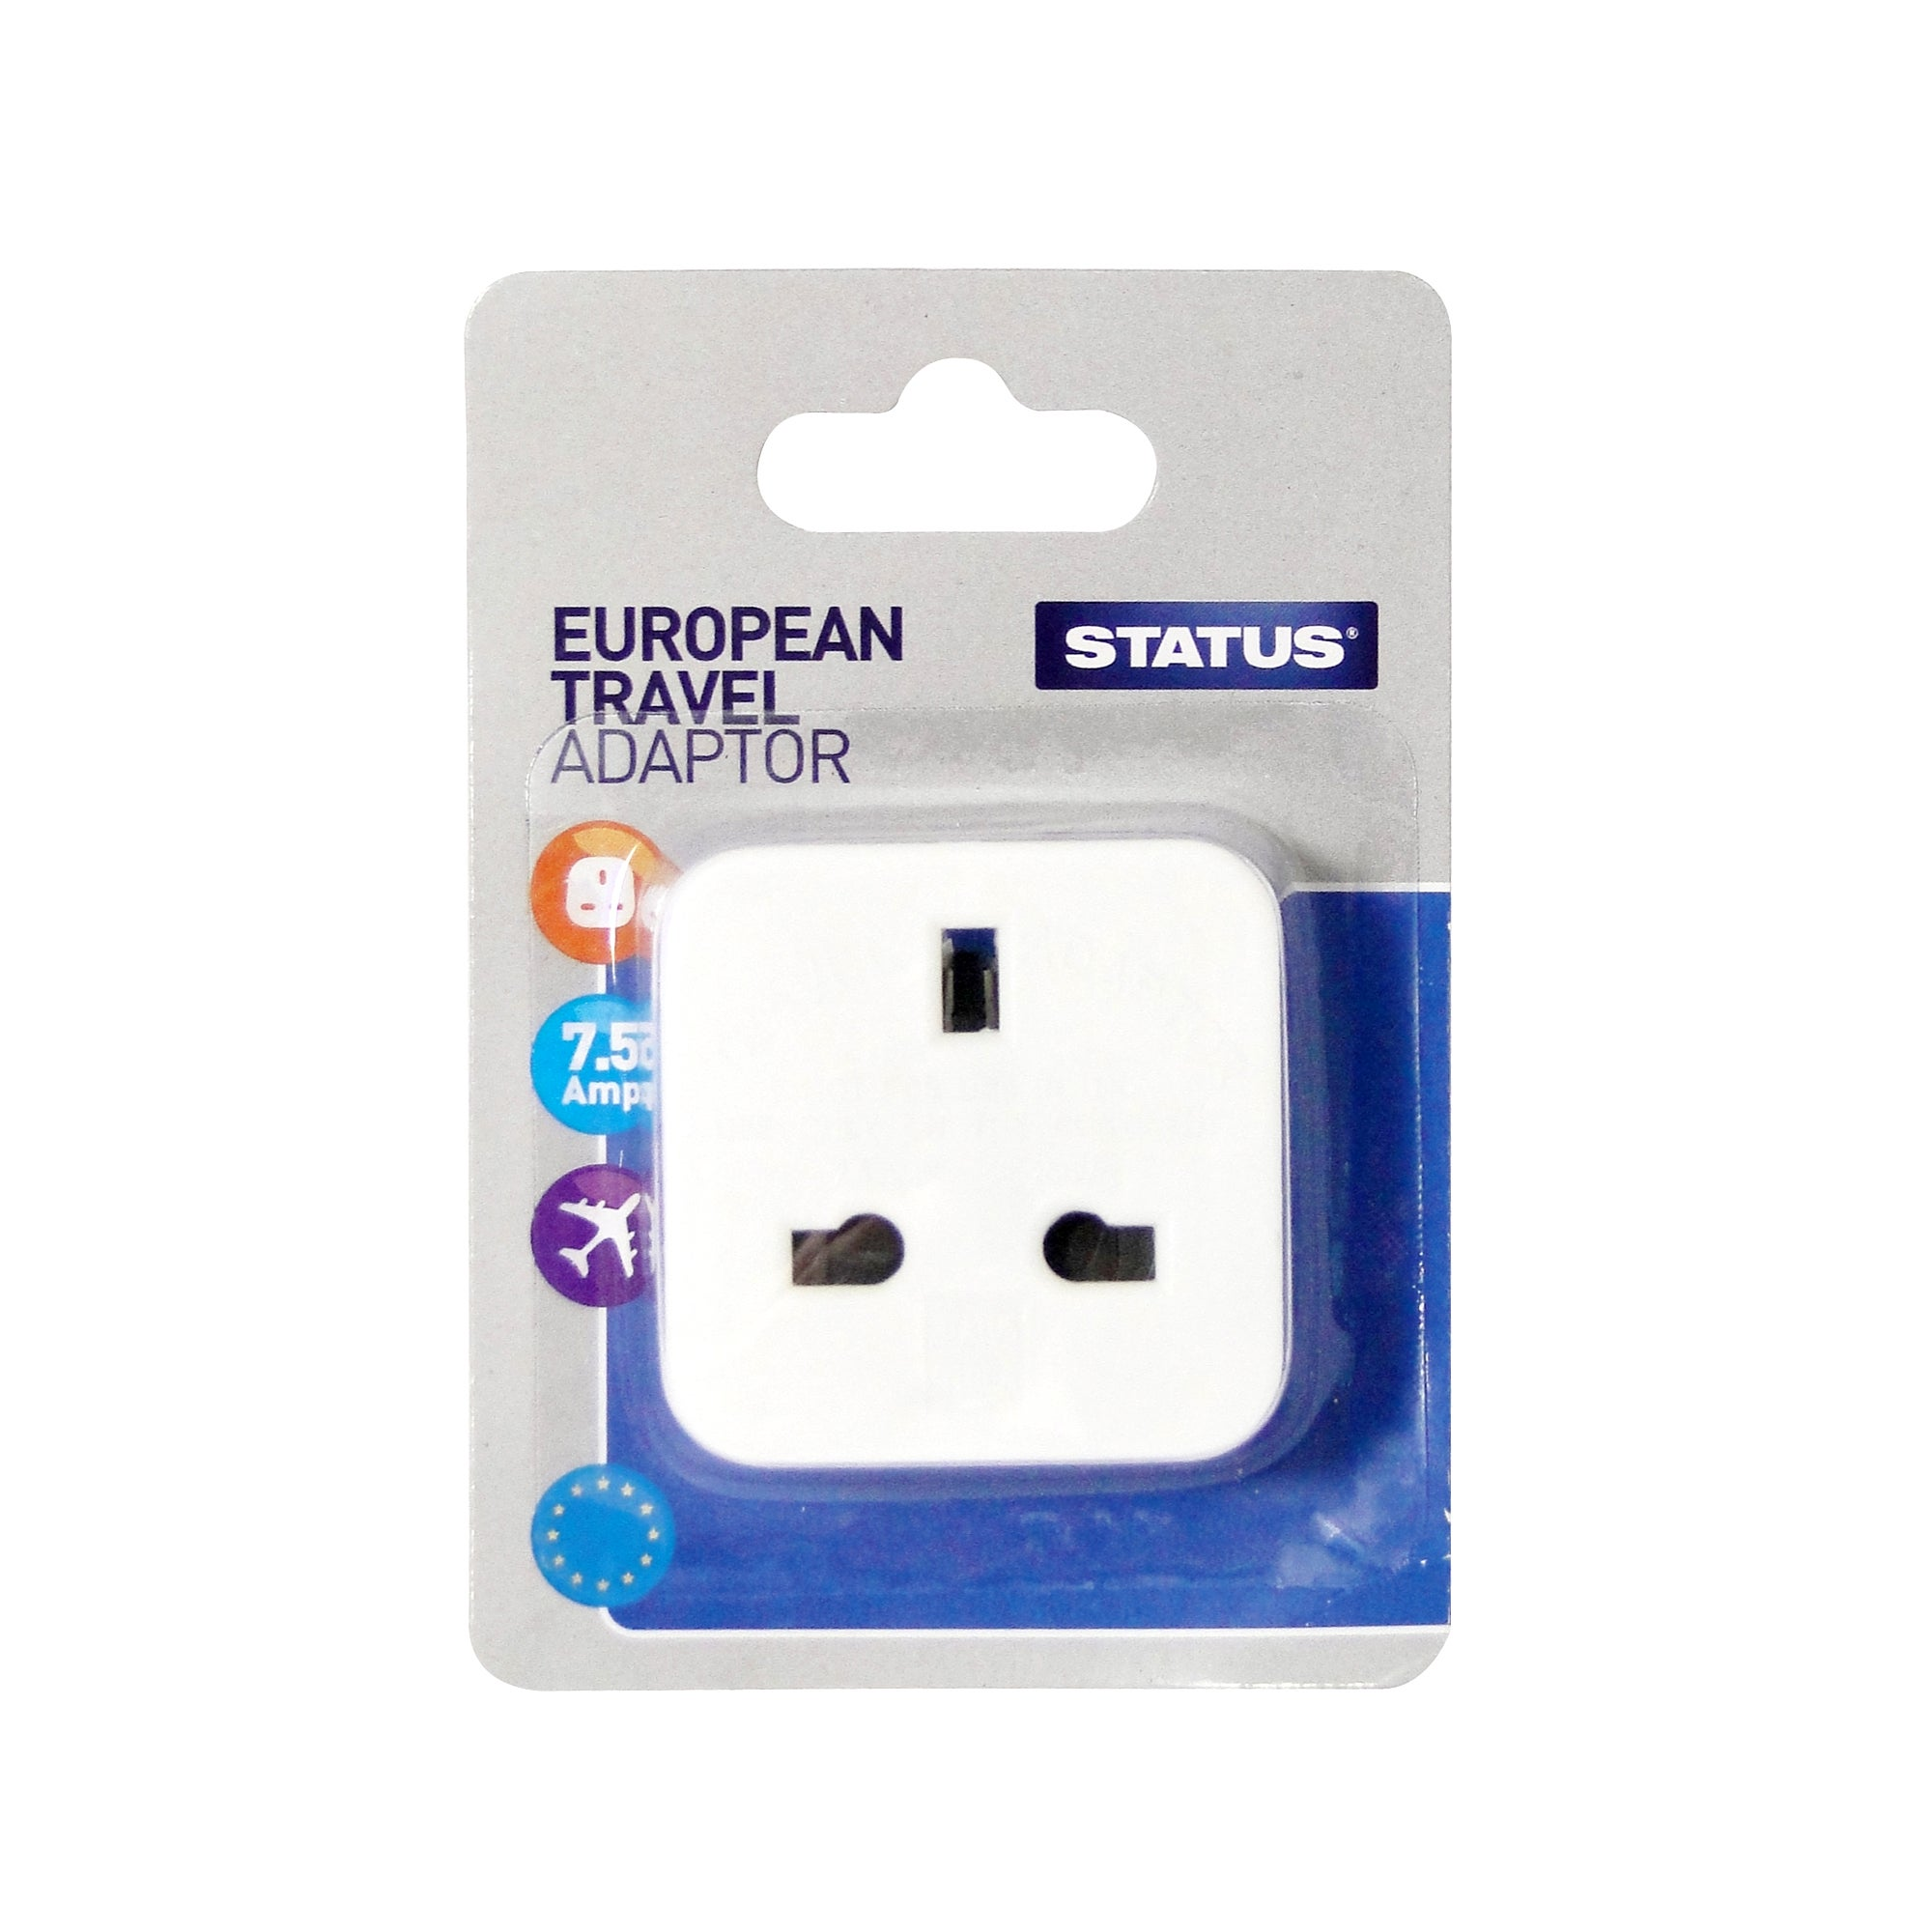 Status European Travel Adaptor